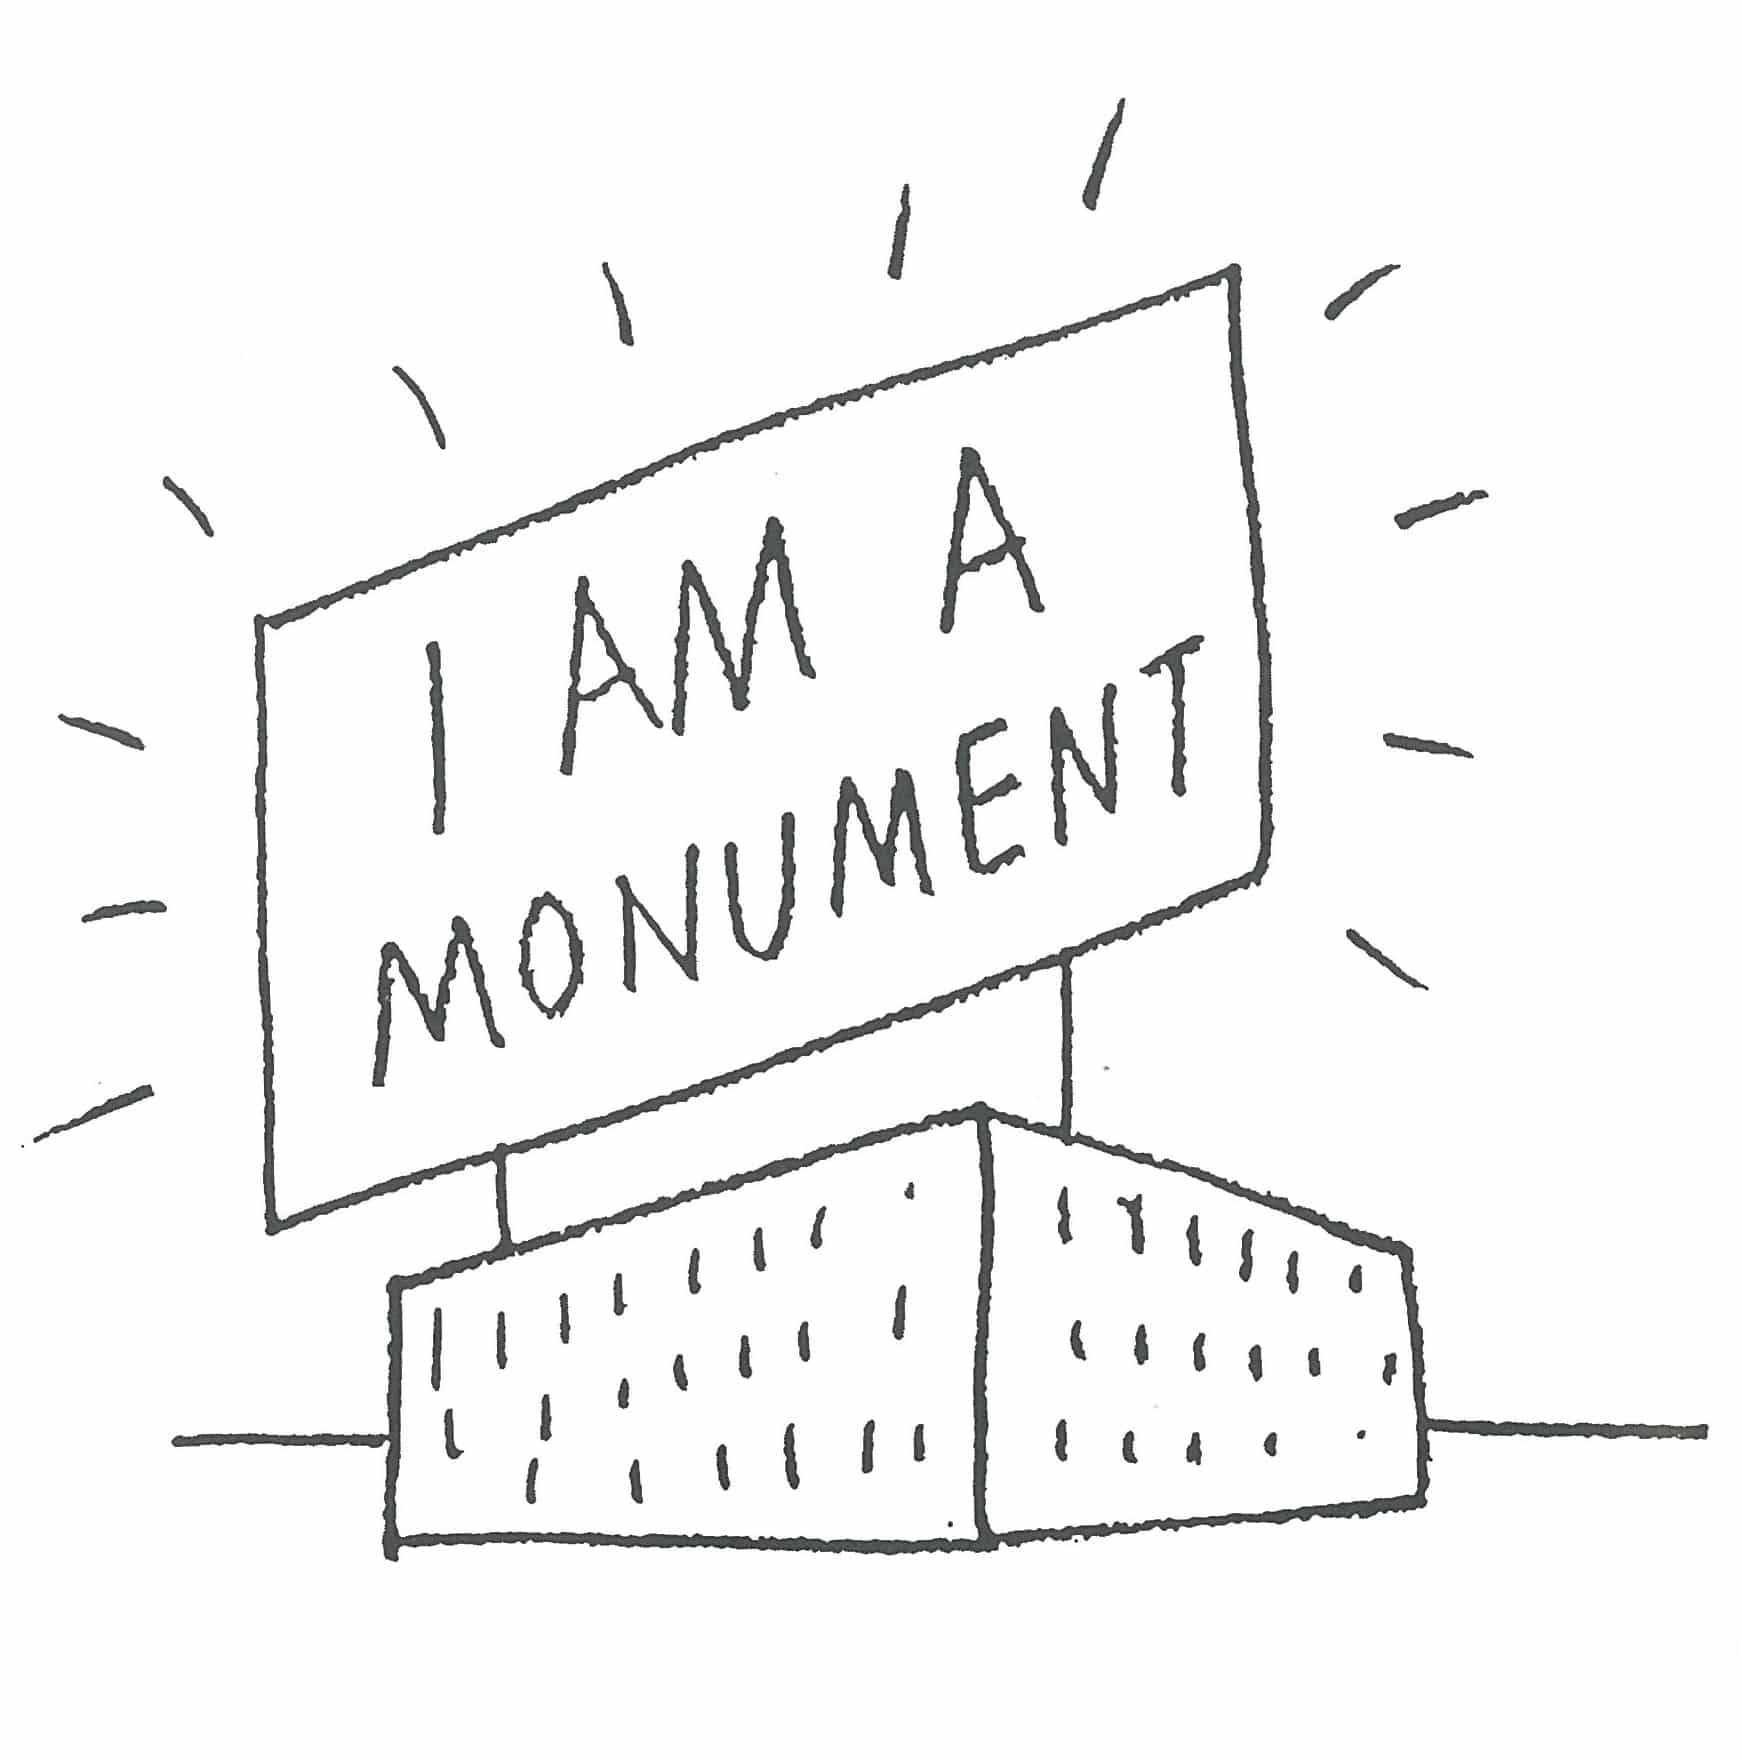 Venturi i am a monument Less is more vs Less is a bore - Which one?